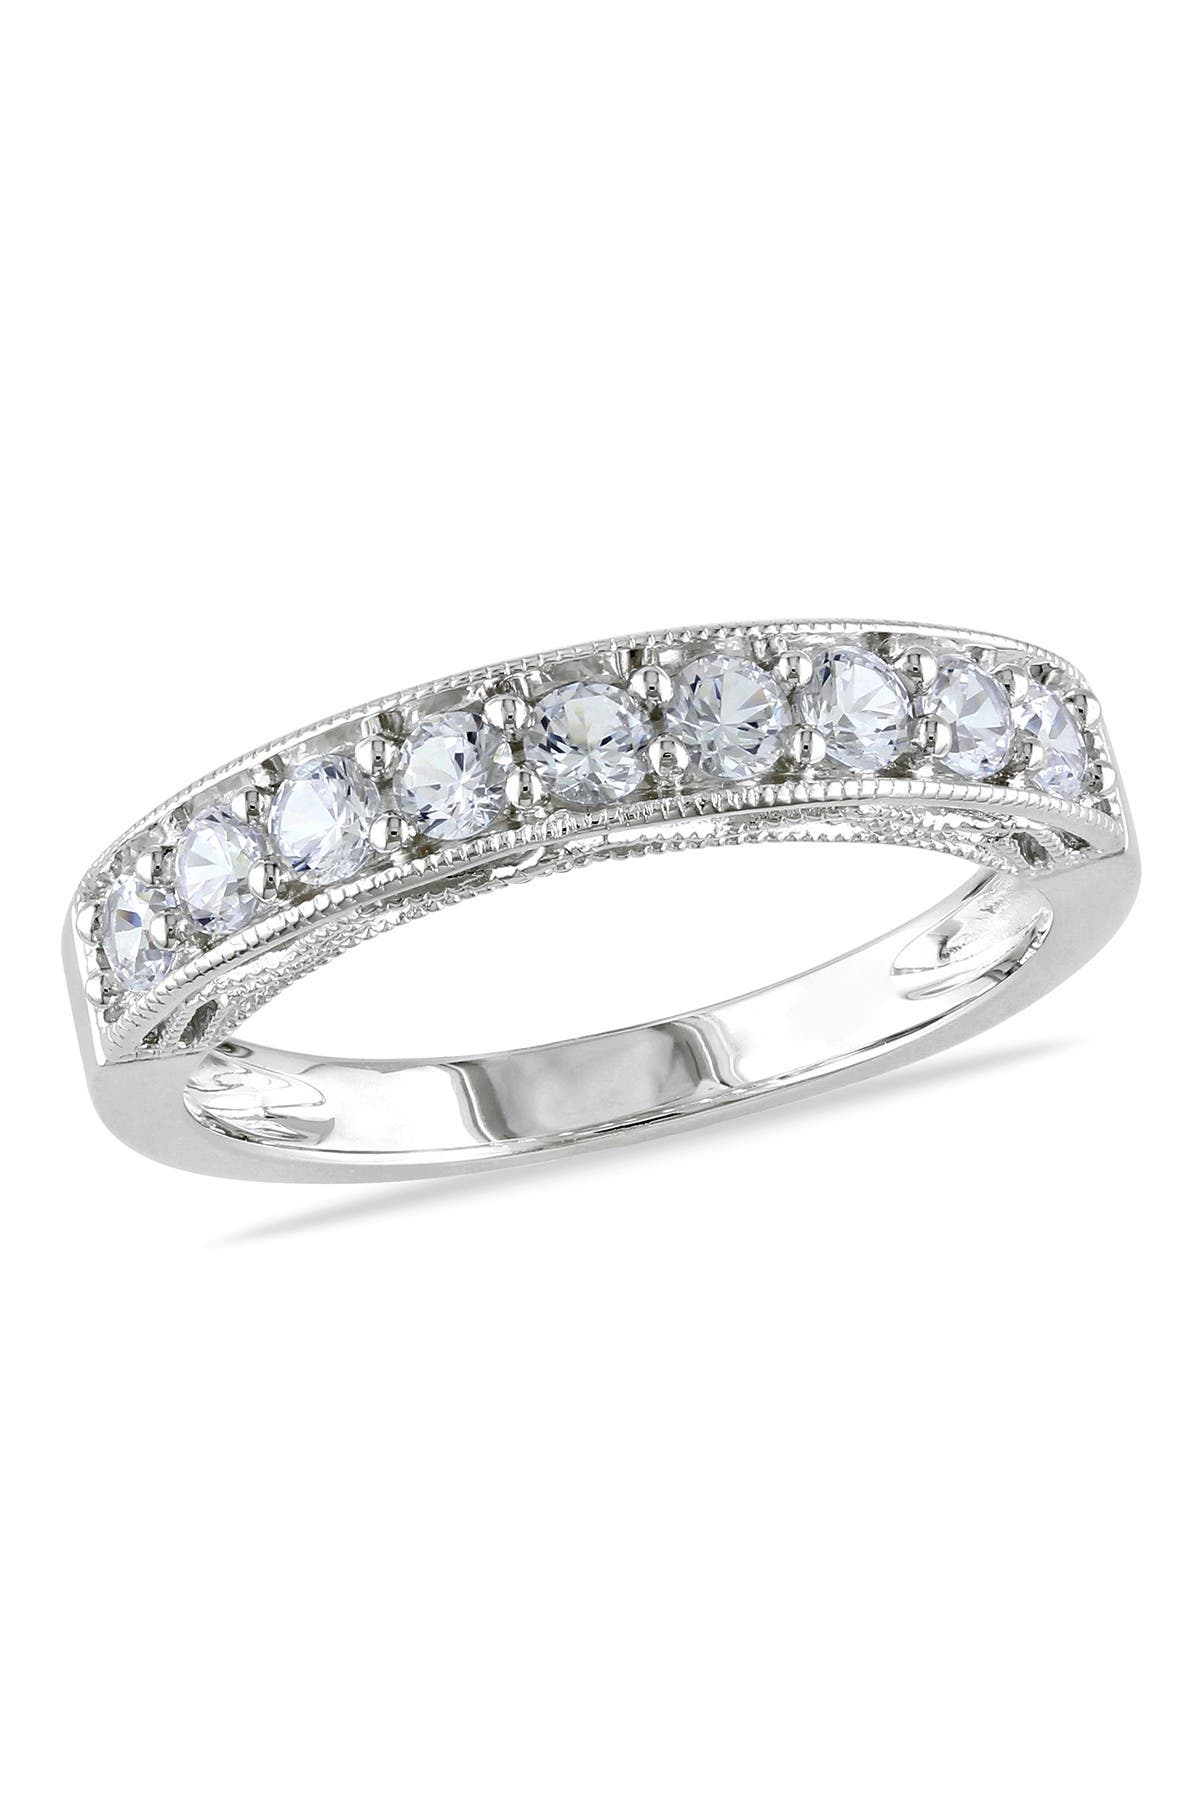 Image of Delmar Sterling Silver Created White Sapphire Band